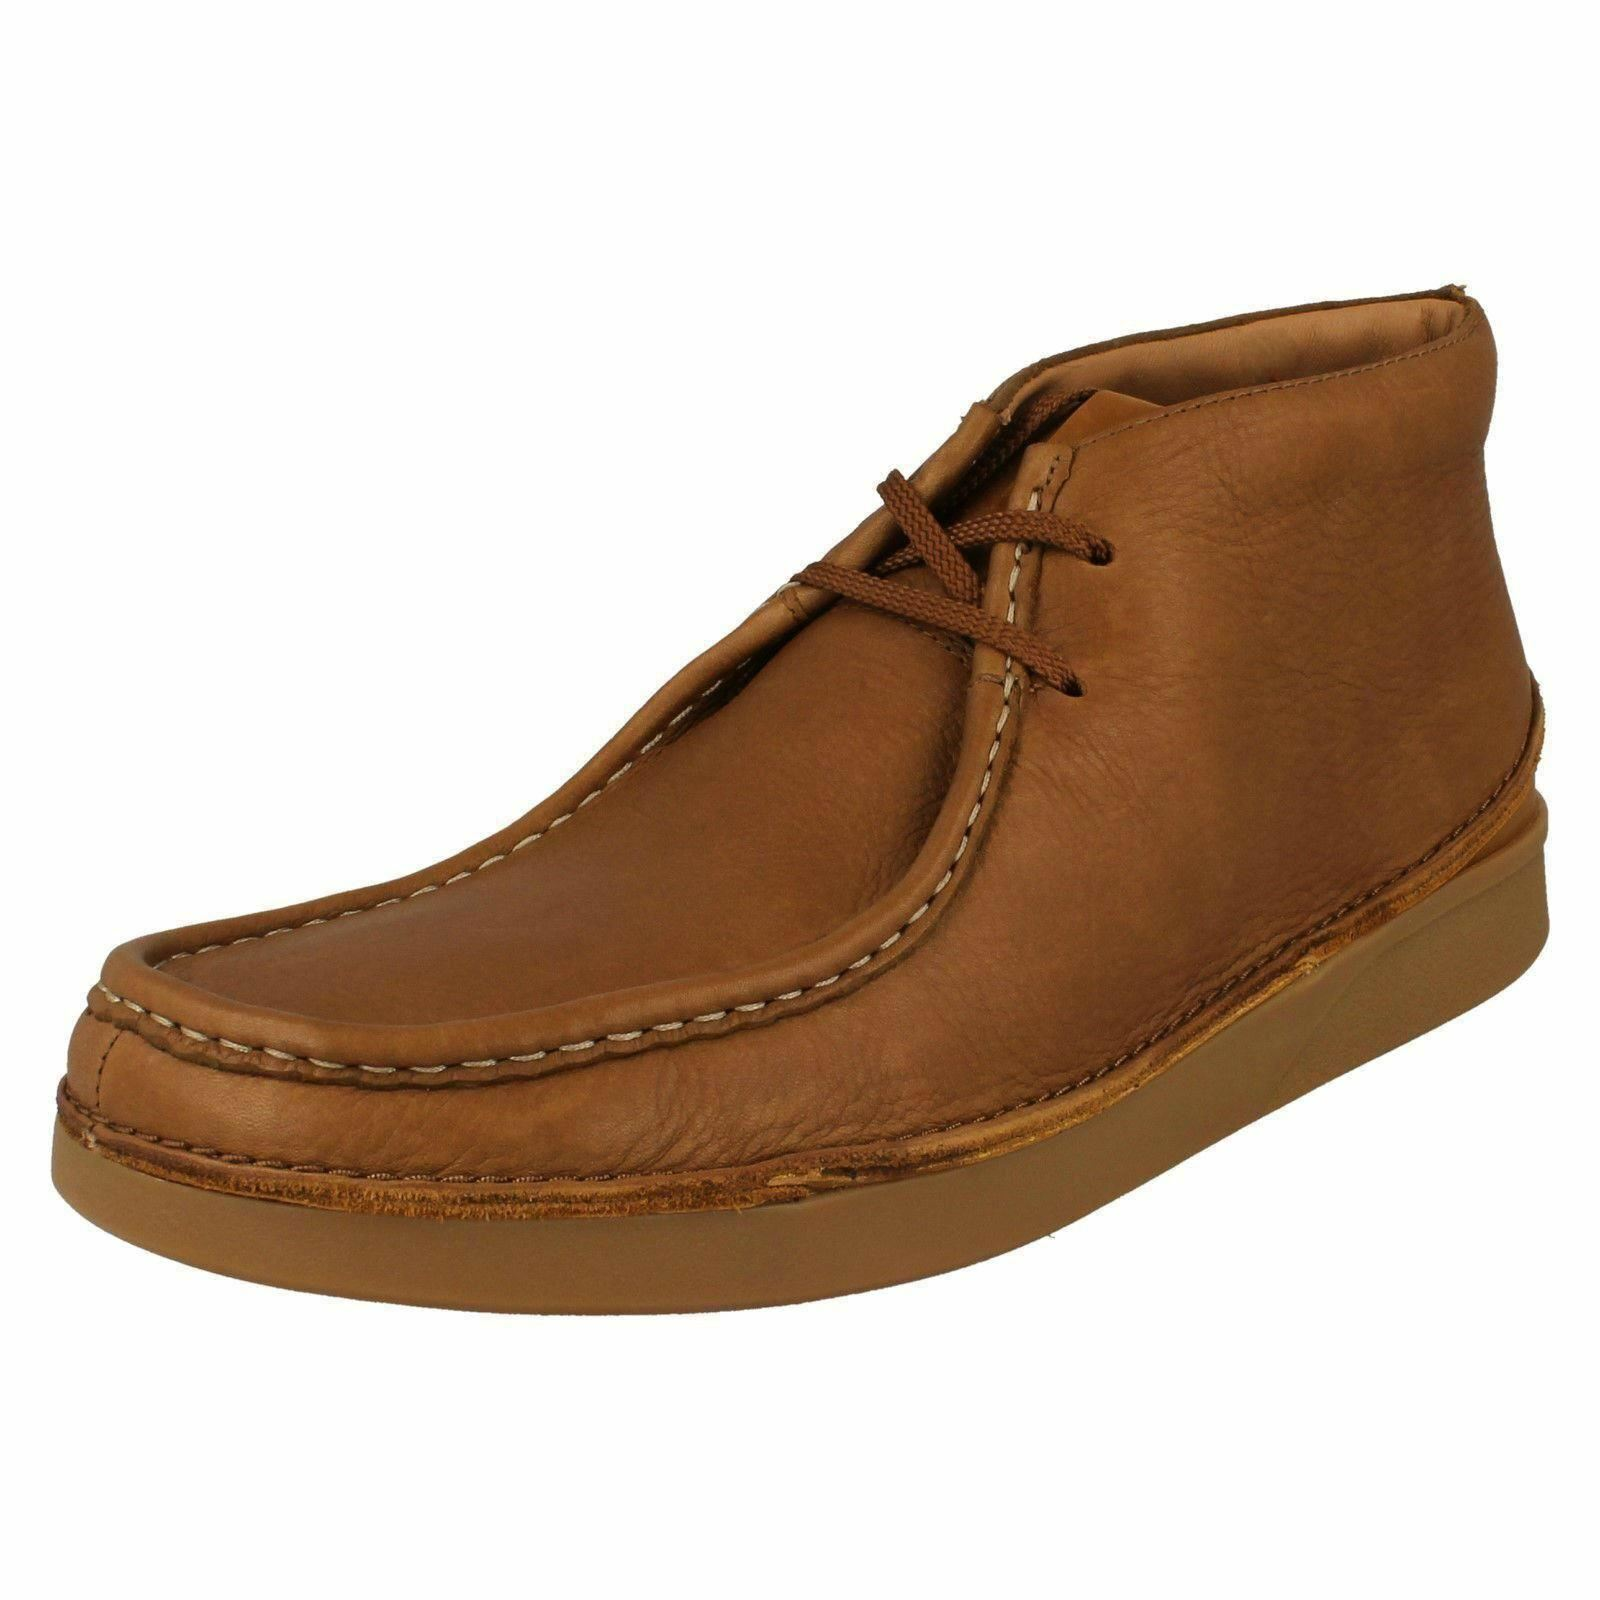 Mens Clarks Oakland Mid Tan Leather Ankle Boots - G Fitting